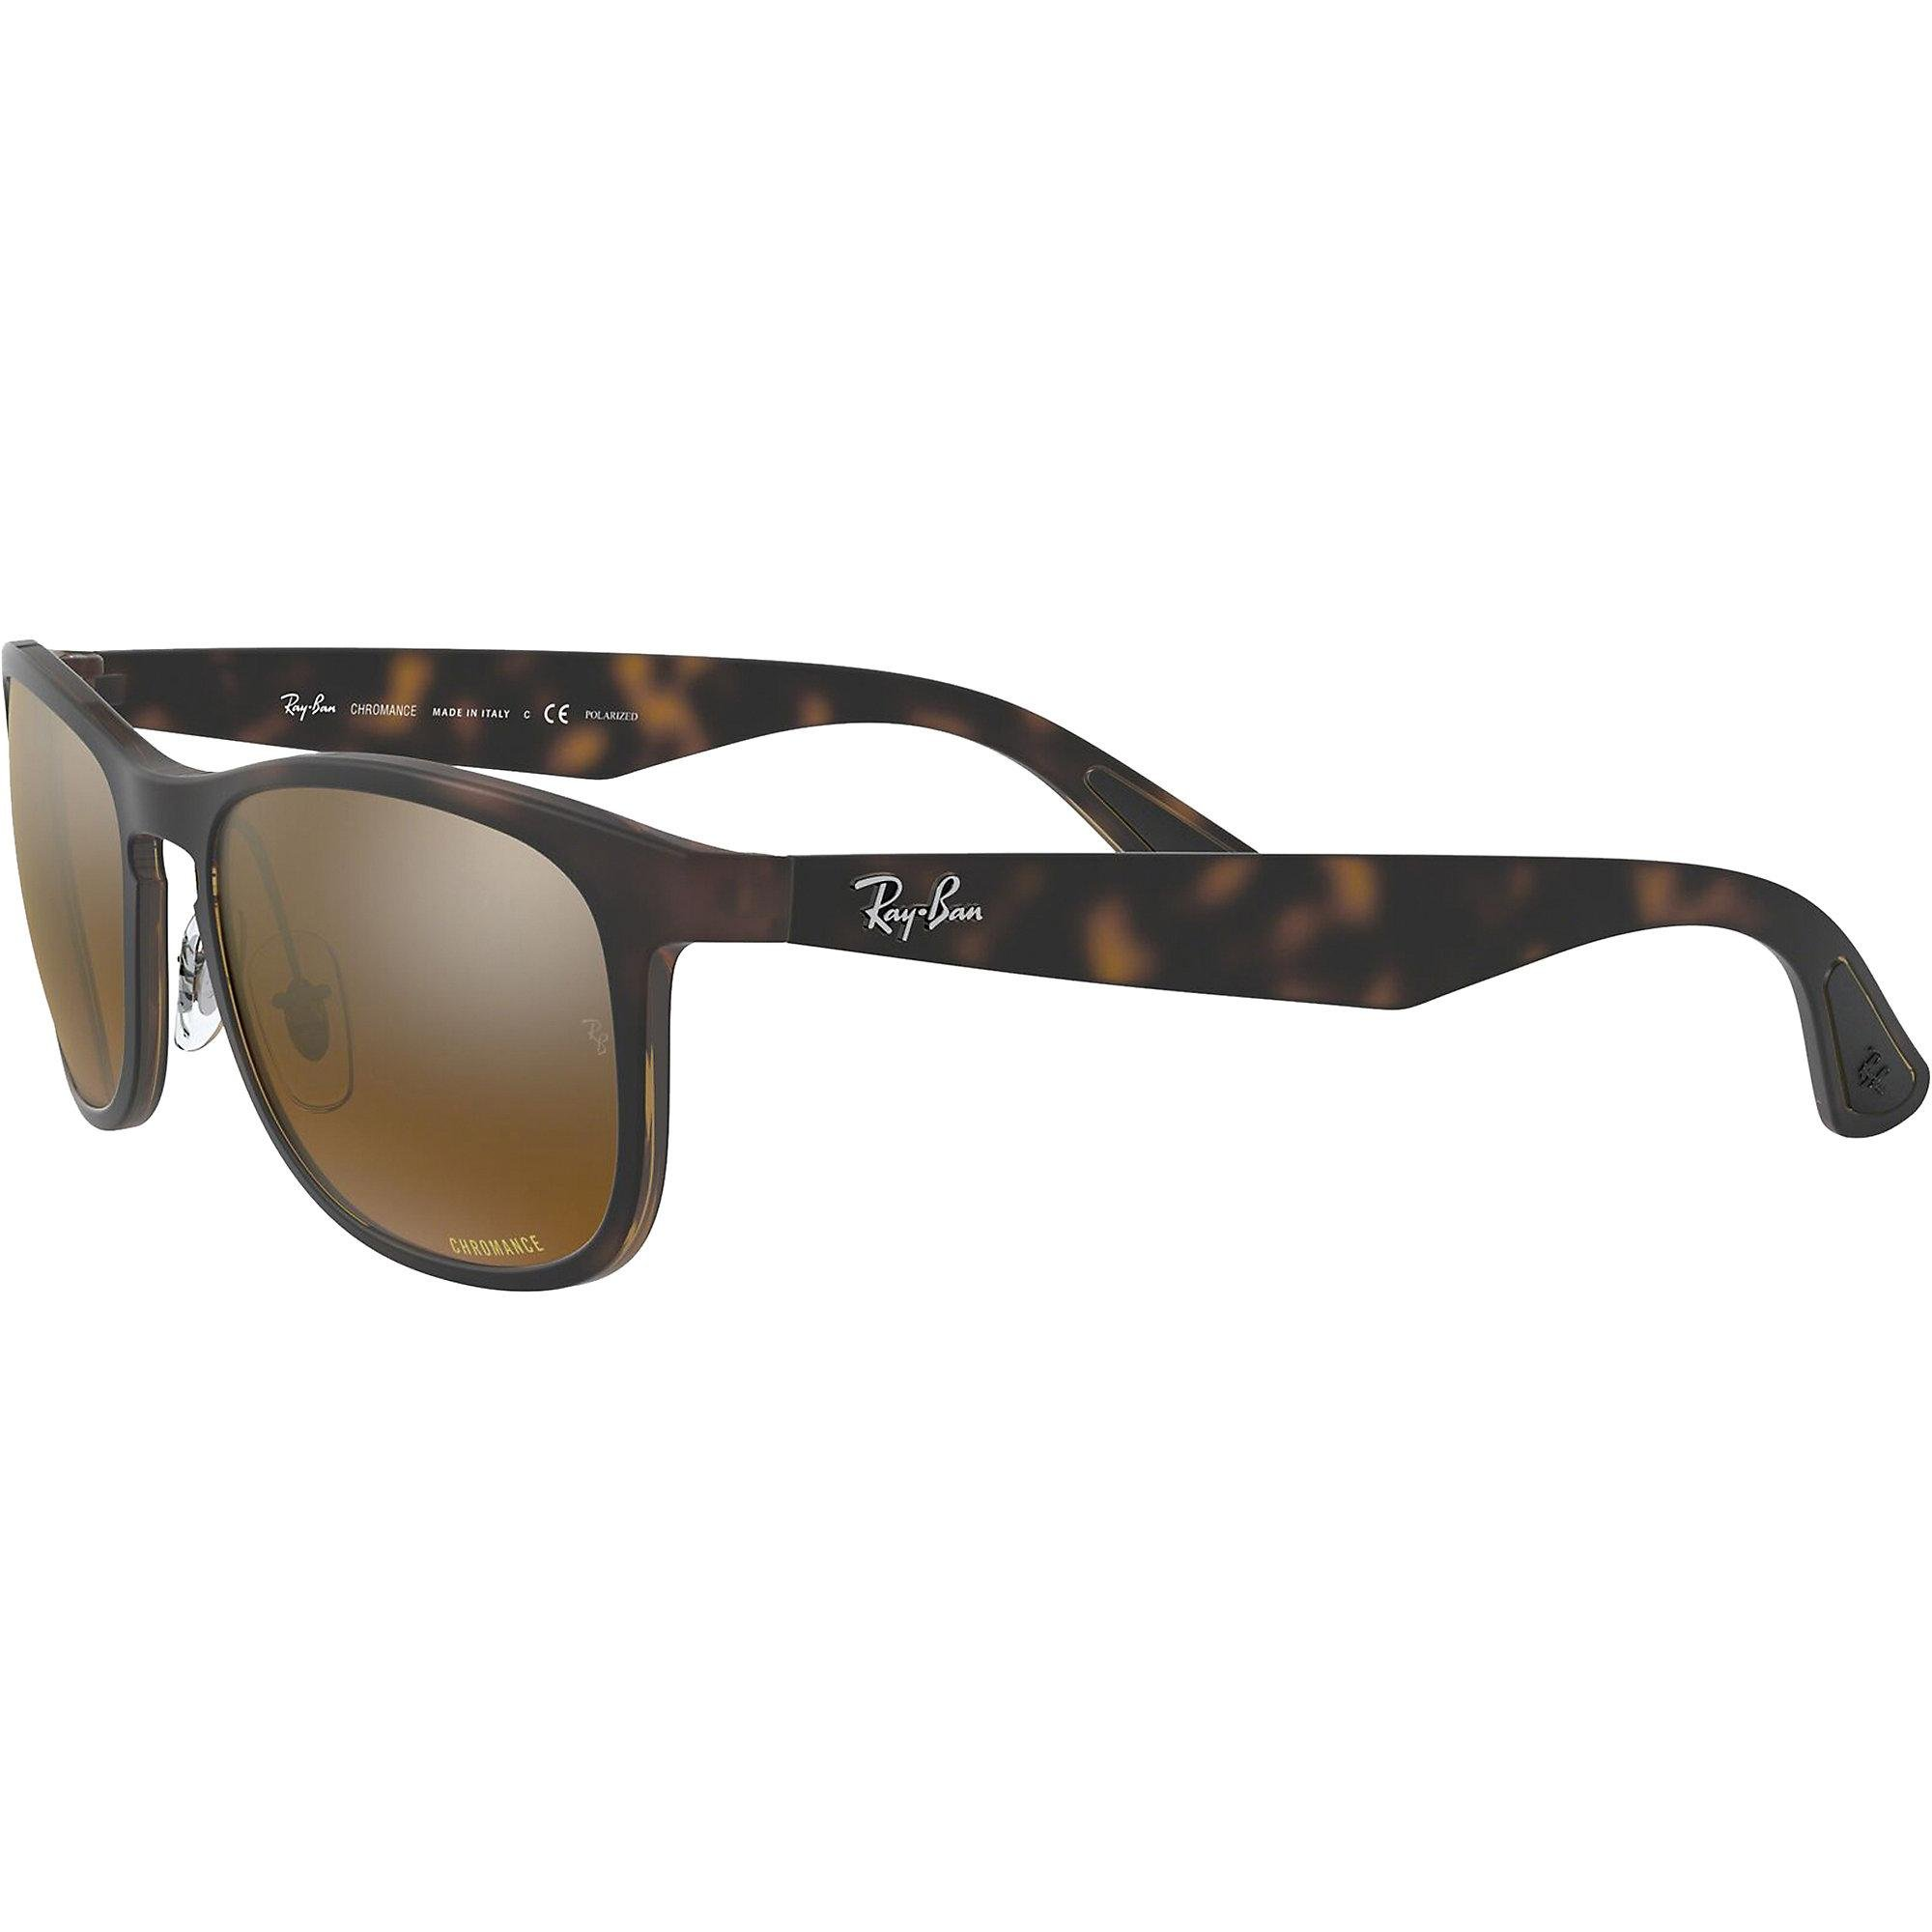 Exclusive and Fashionable  Ray ban Wafer sunglass